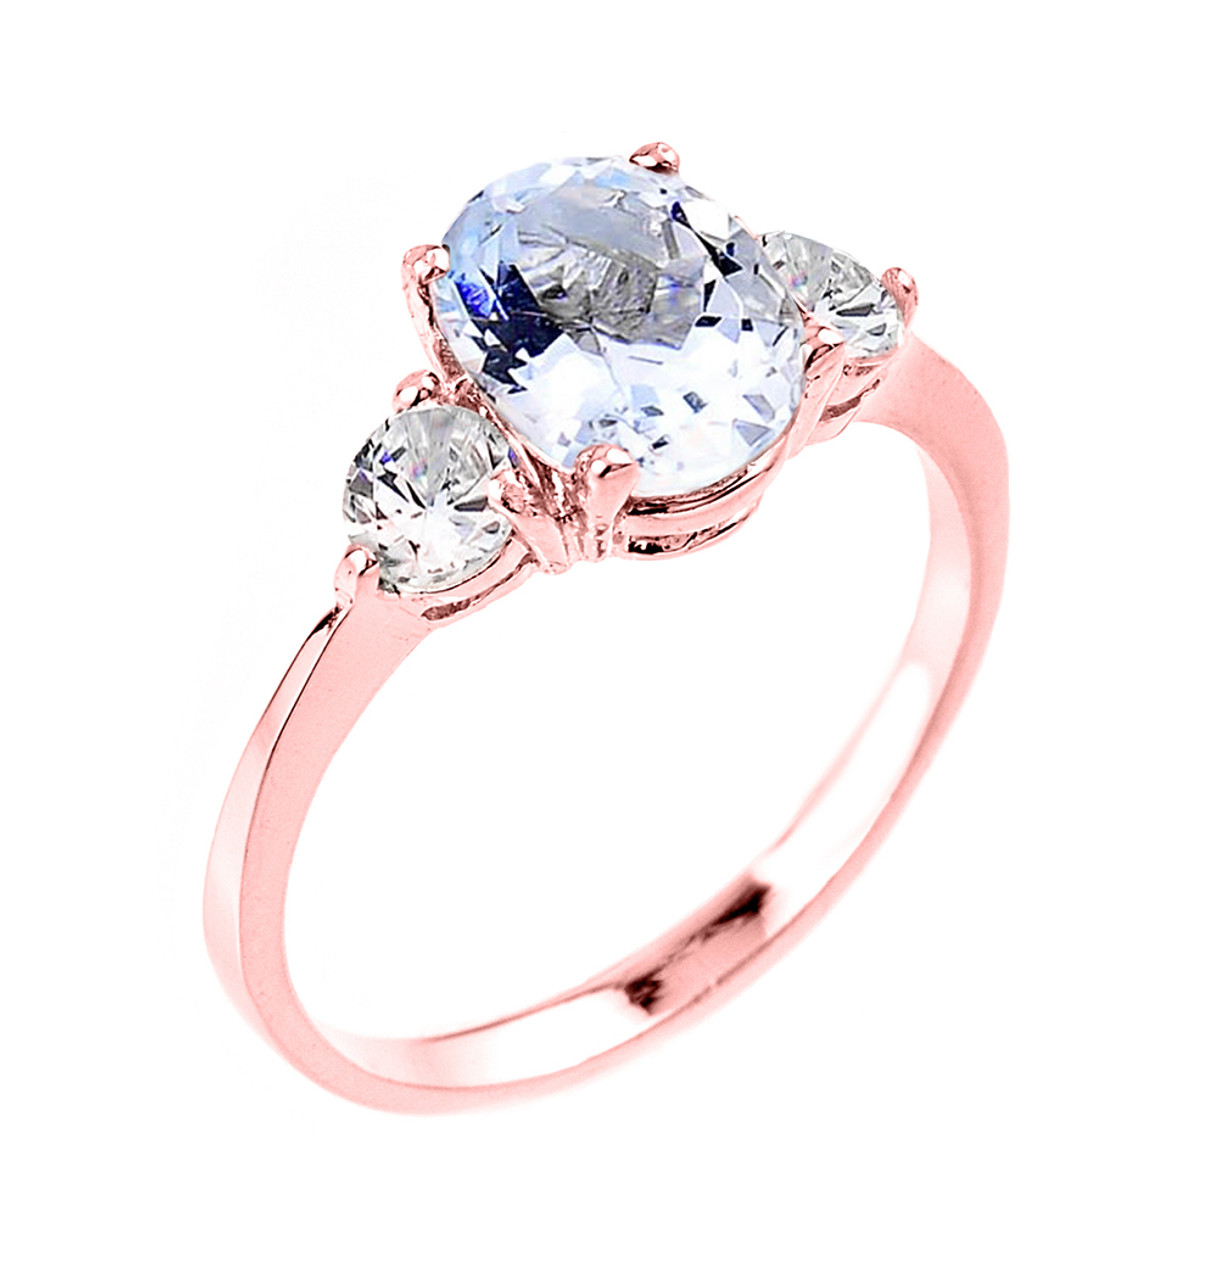 of editor scale diamond subsampling with product finely crop window jewellery green shop pink and boodles rings gold upscale shopping the vintage band singular engagement rose ring collage diamonds coloured false